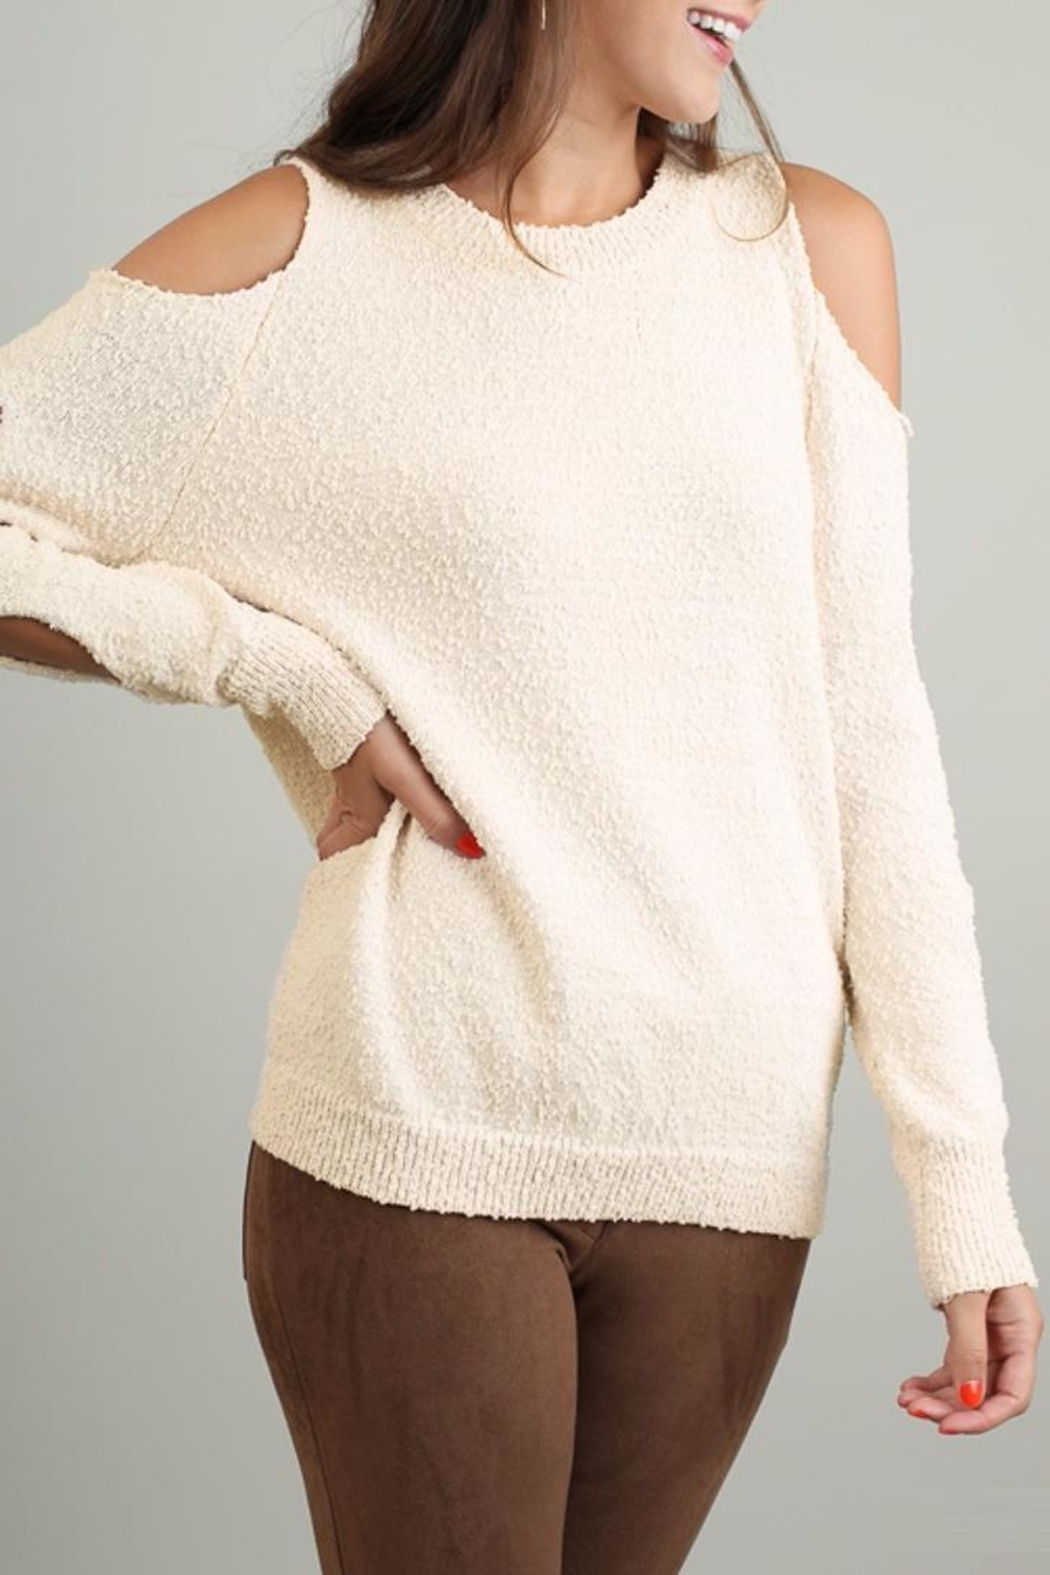 People Outfitter Ines Soft Sweater from New York City — Shoptiques